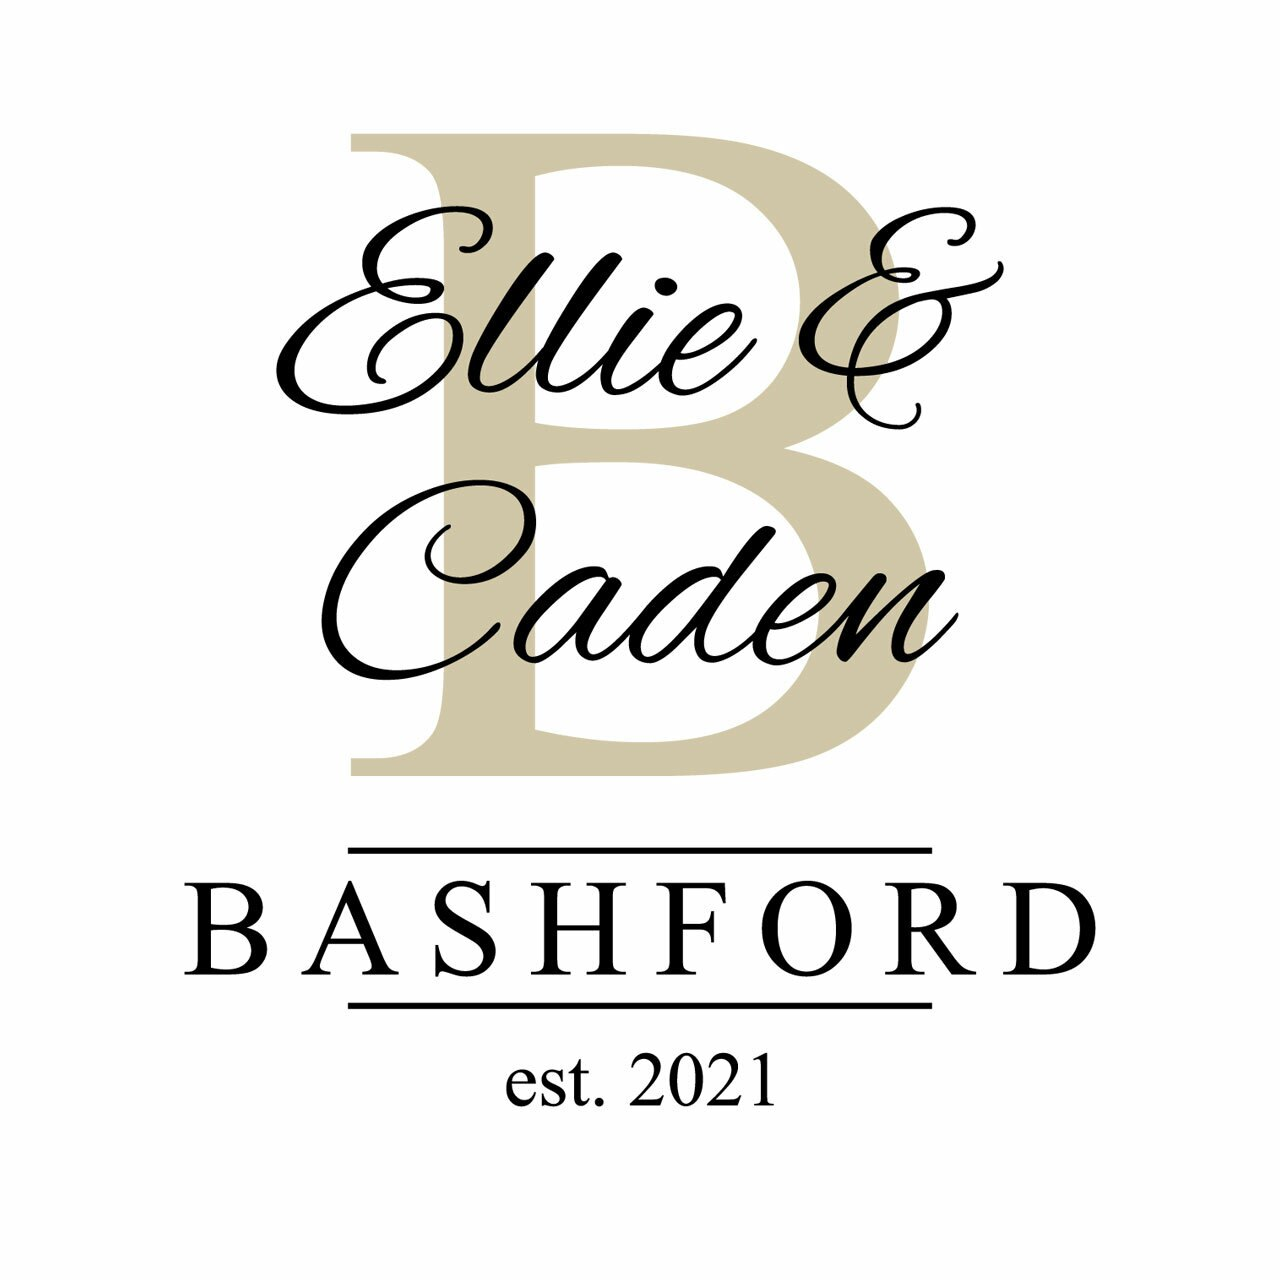 The name Ellie & Caden written in black superimposed on a Beige colored letter B all above the last name Bashford est. 2021 on a white background